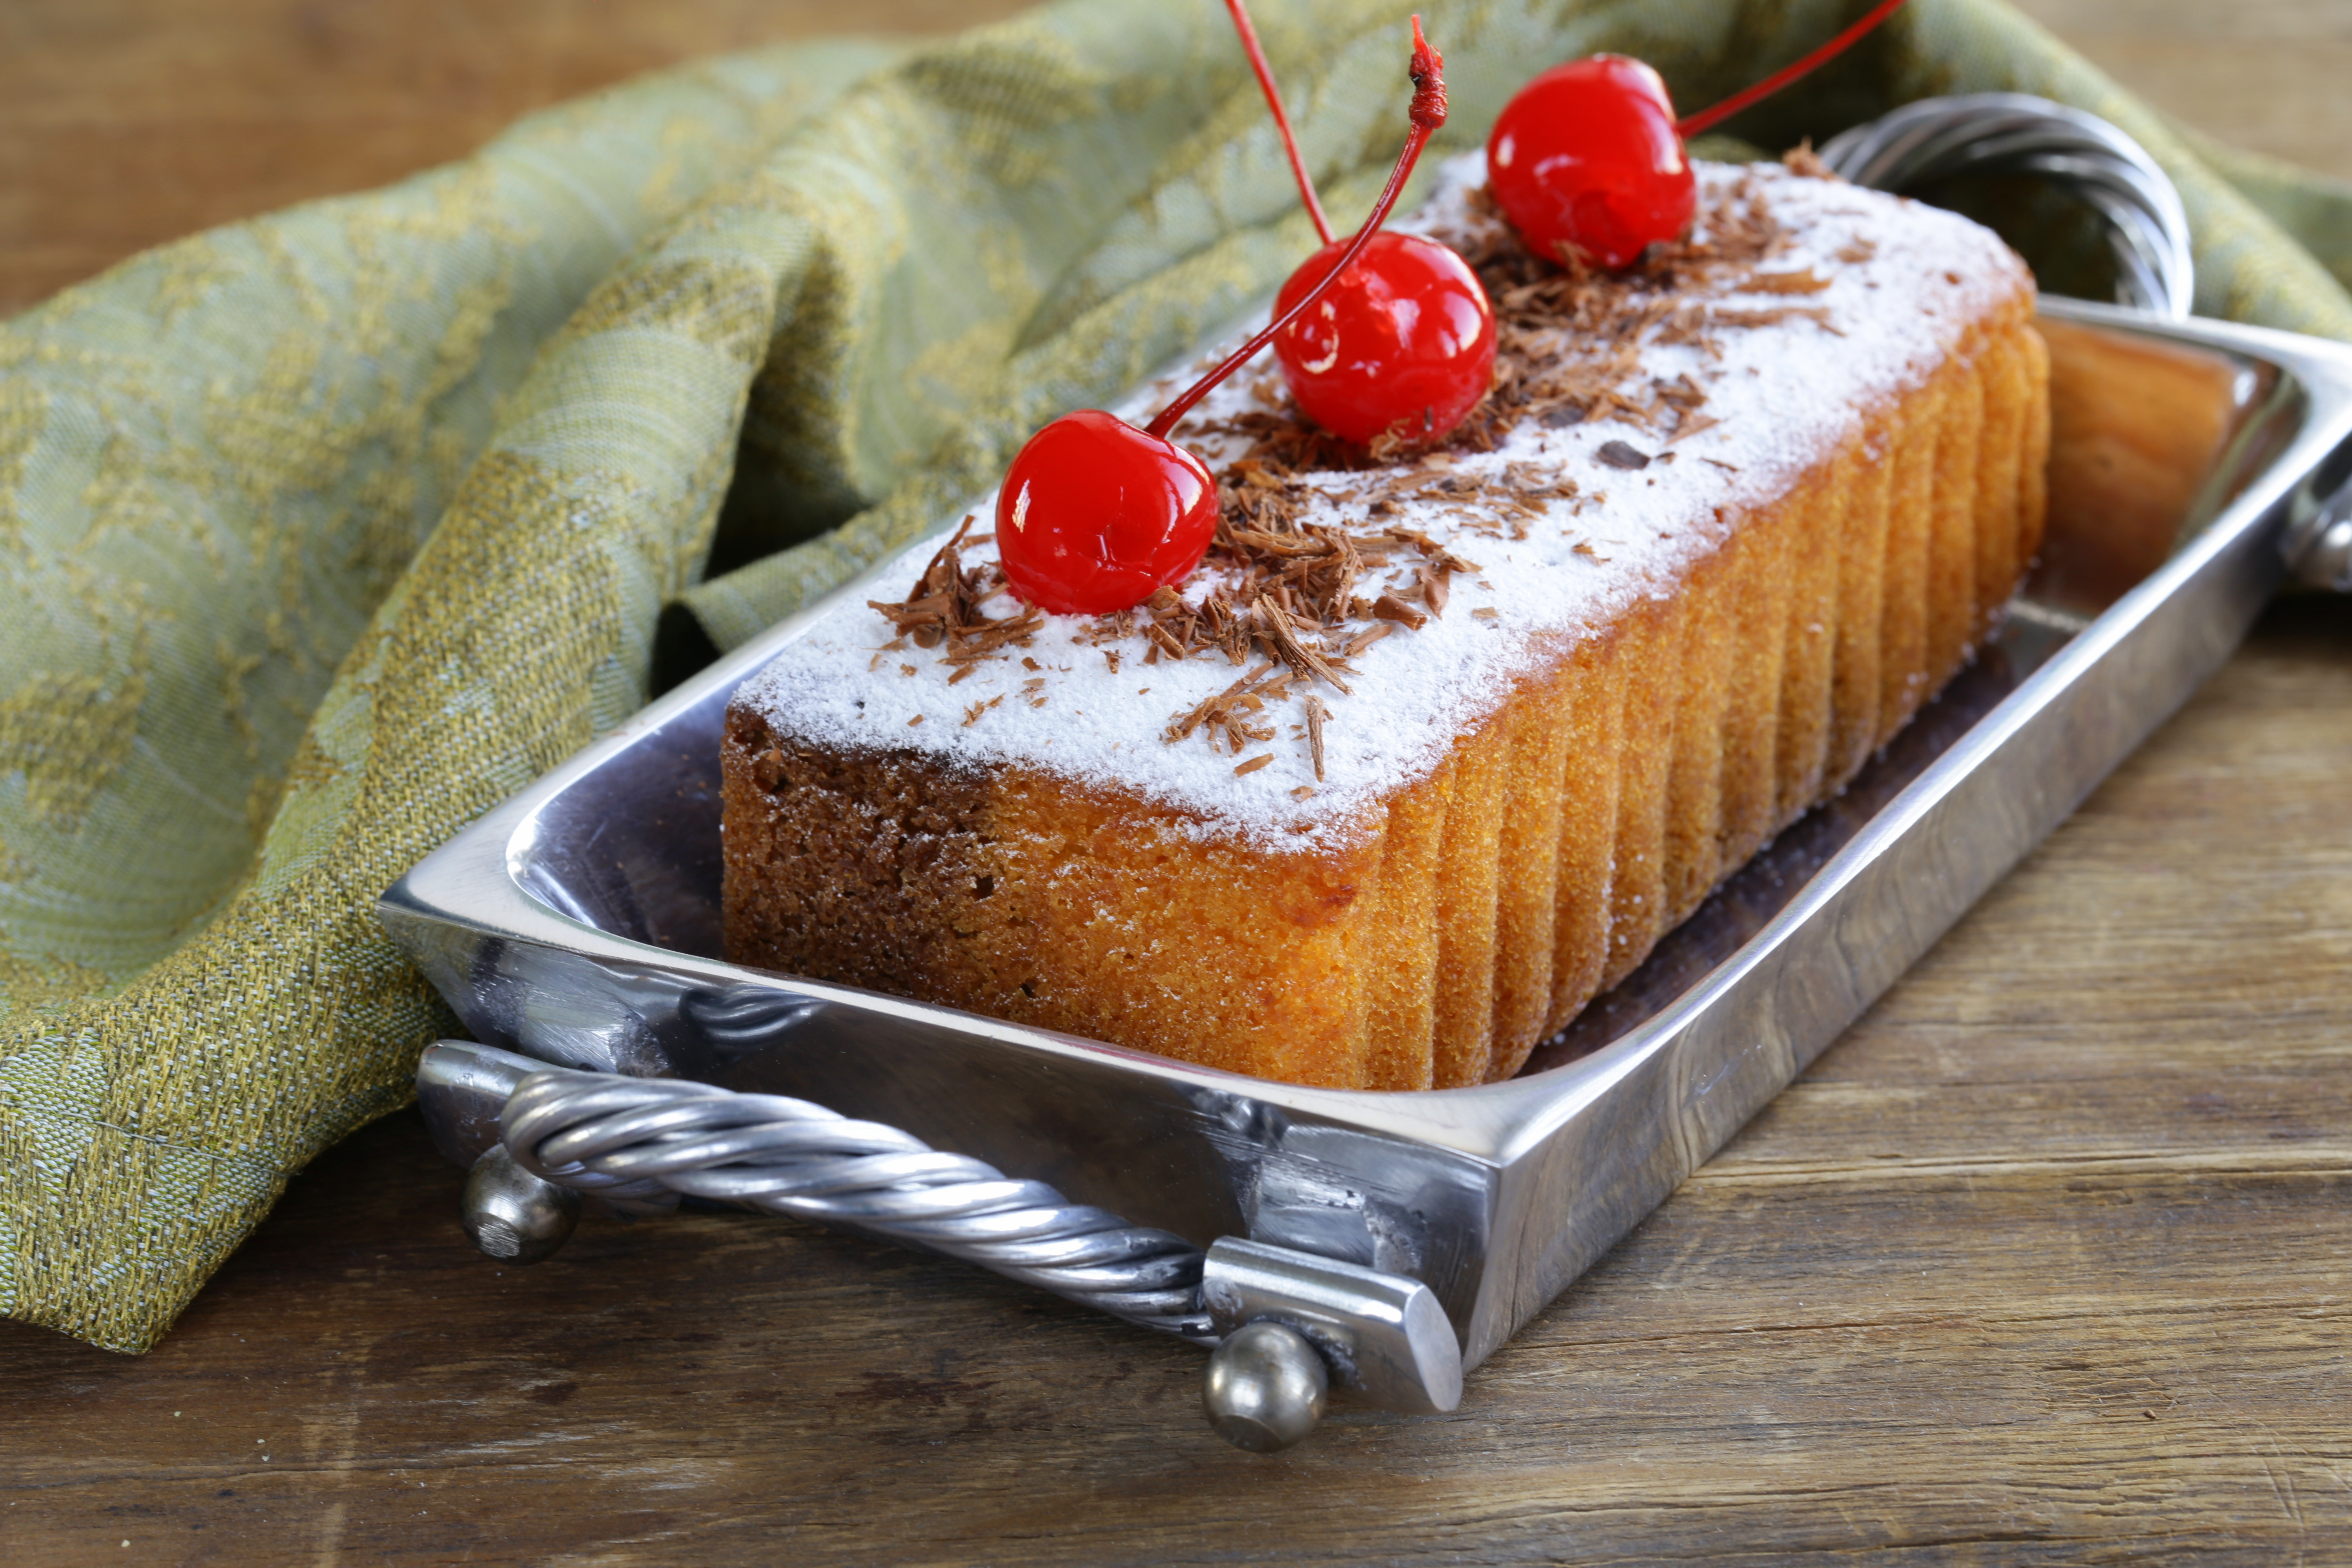 billet, billets, billet specialties, billeting, billet definition, sport news, Ontario hockey league, hockey games, NHL games, American hockey league, junior hockey, baked, cake, cherries, cherry, dessert, homemade, make from scratch, pound cake, condensed milk, sweet